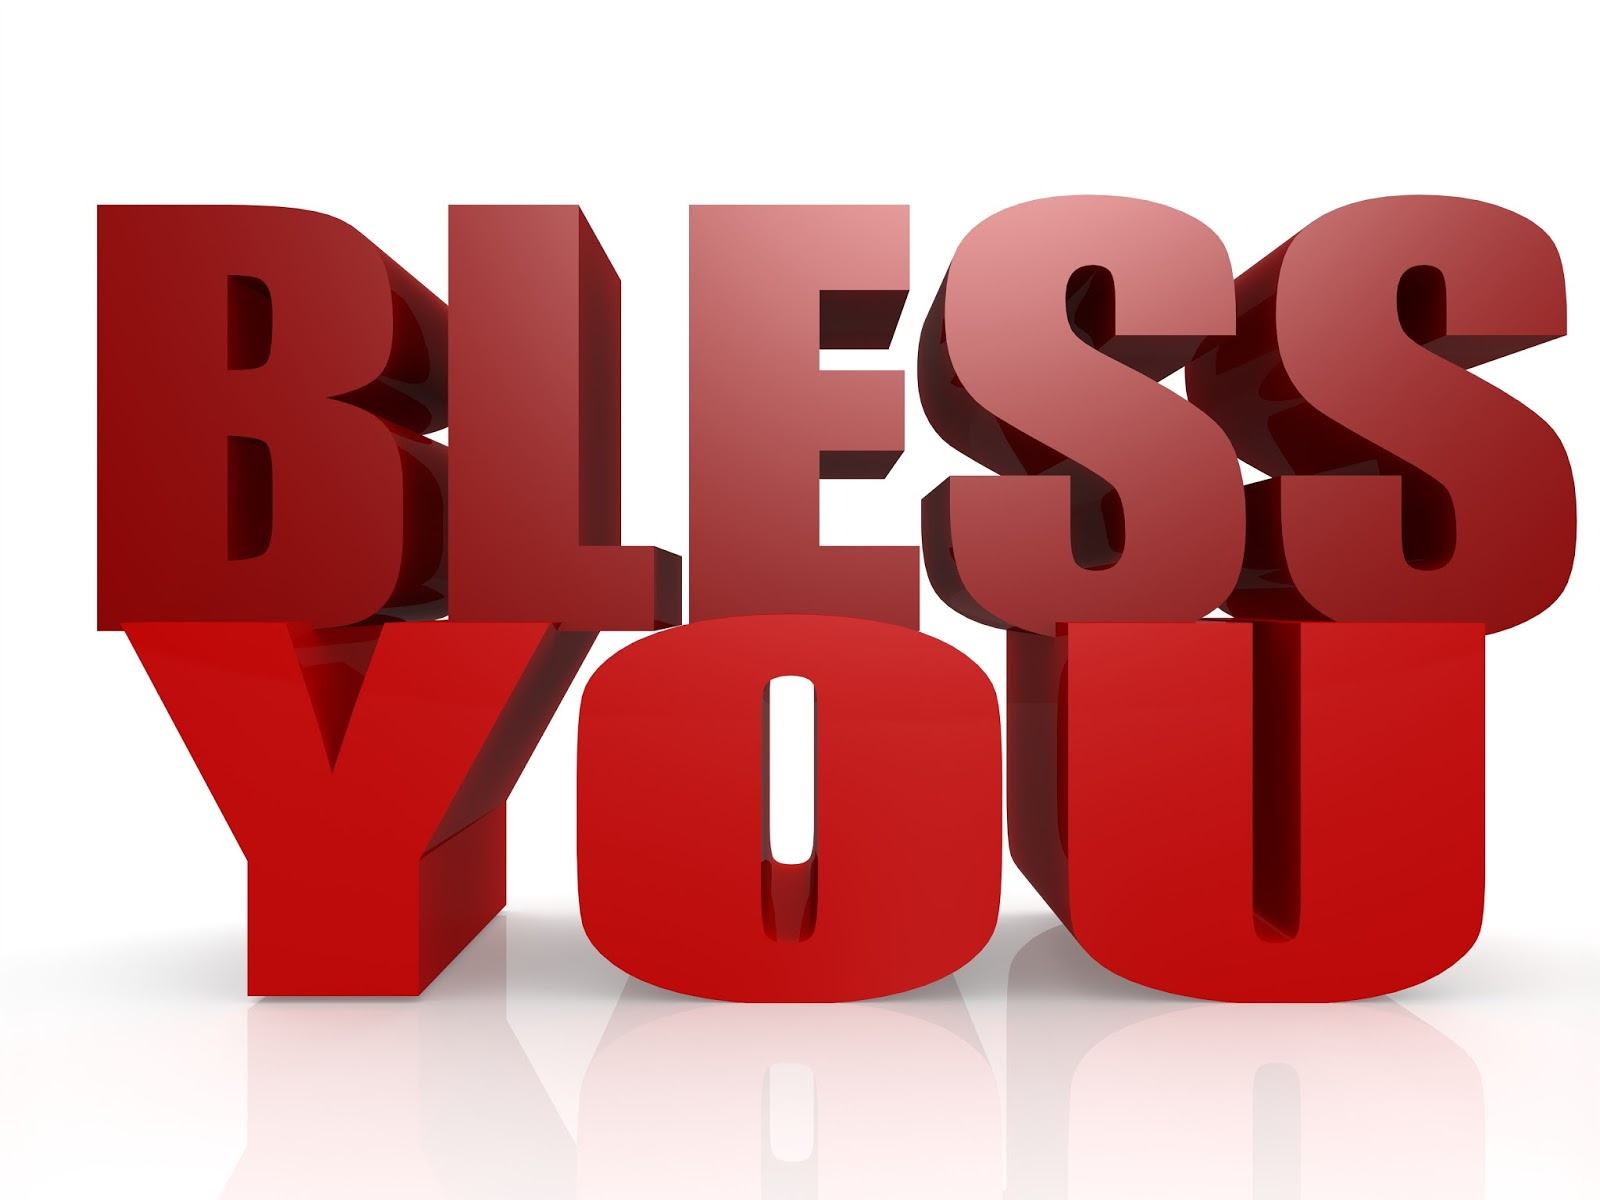 how to say god bless you in zulu